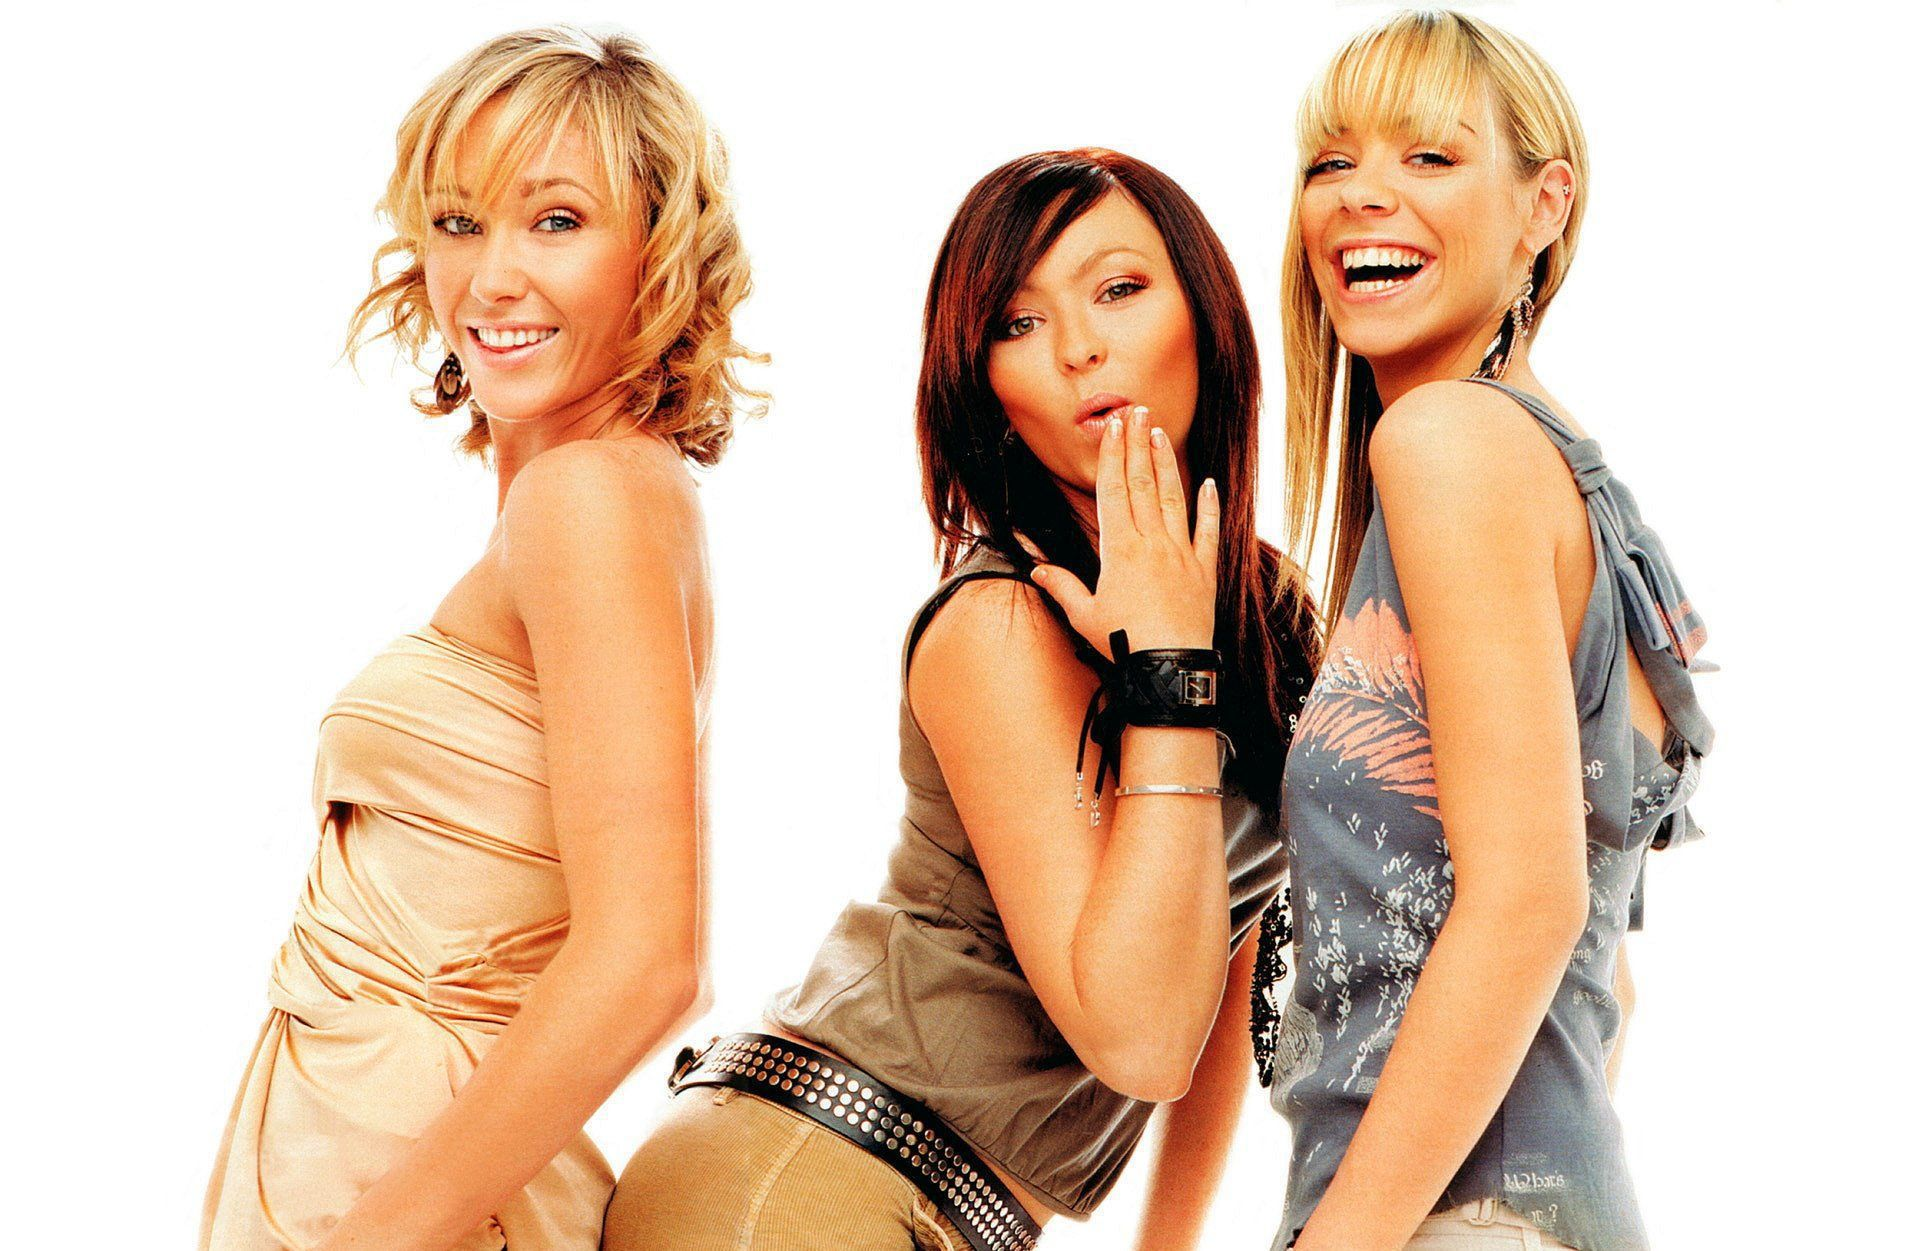 Atomic Kitten Wallpaper